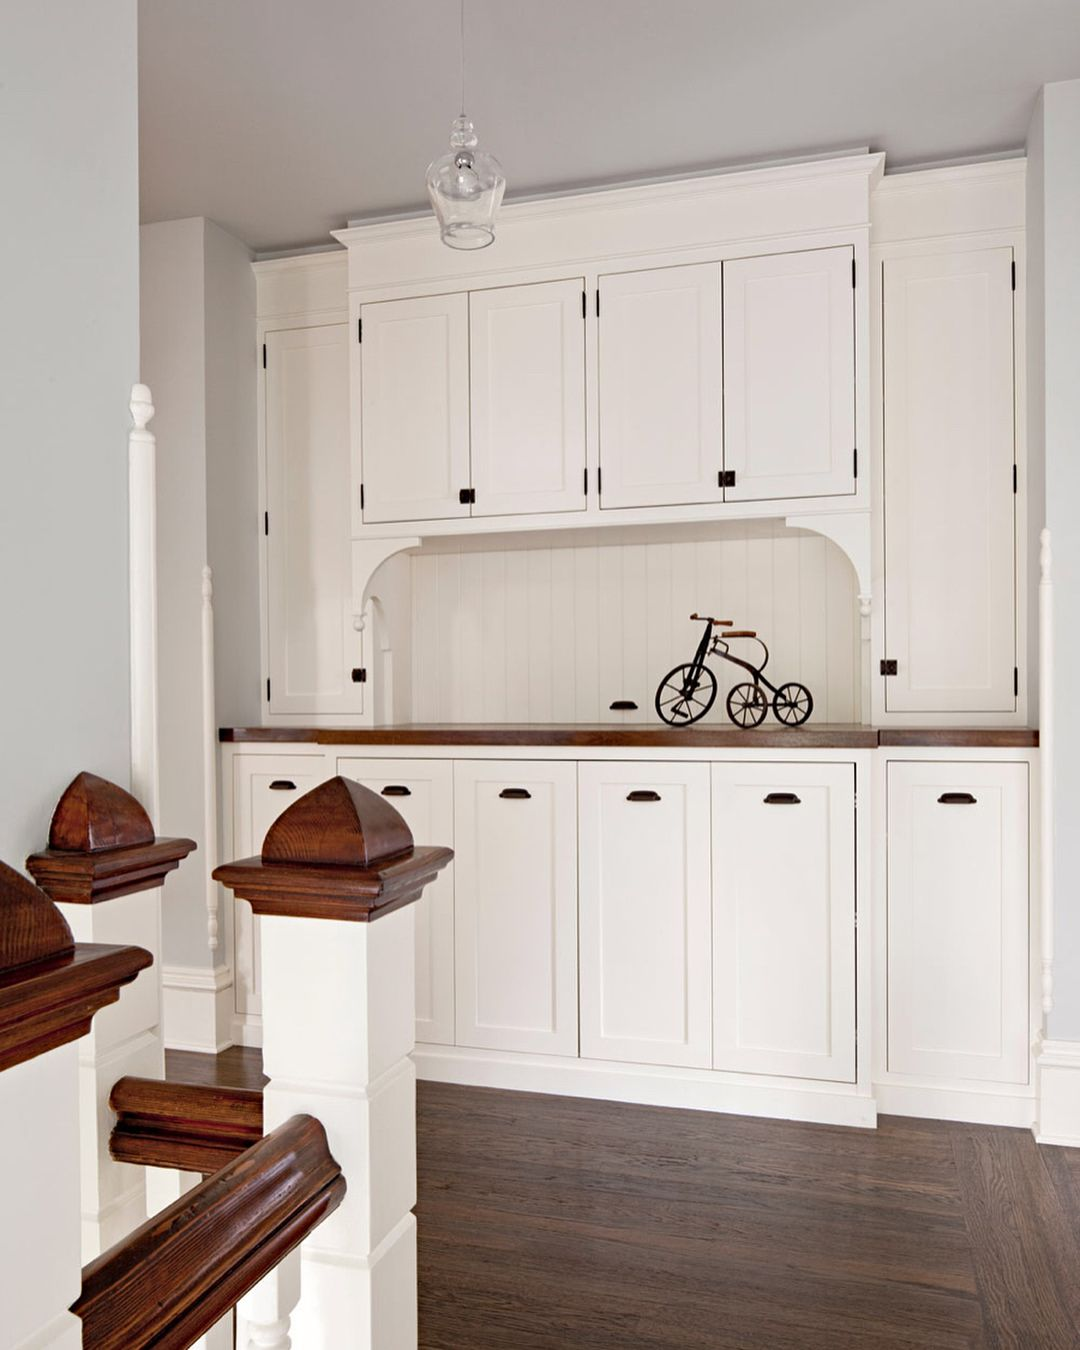 hidden washer dryer swipe left to unveil the secret of the cabinet rh pinterest com